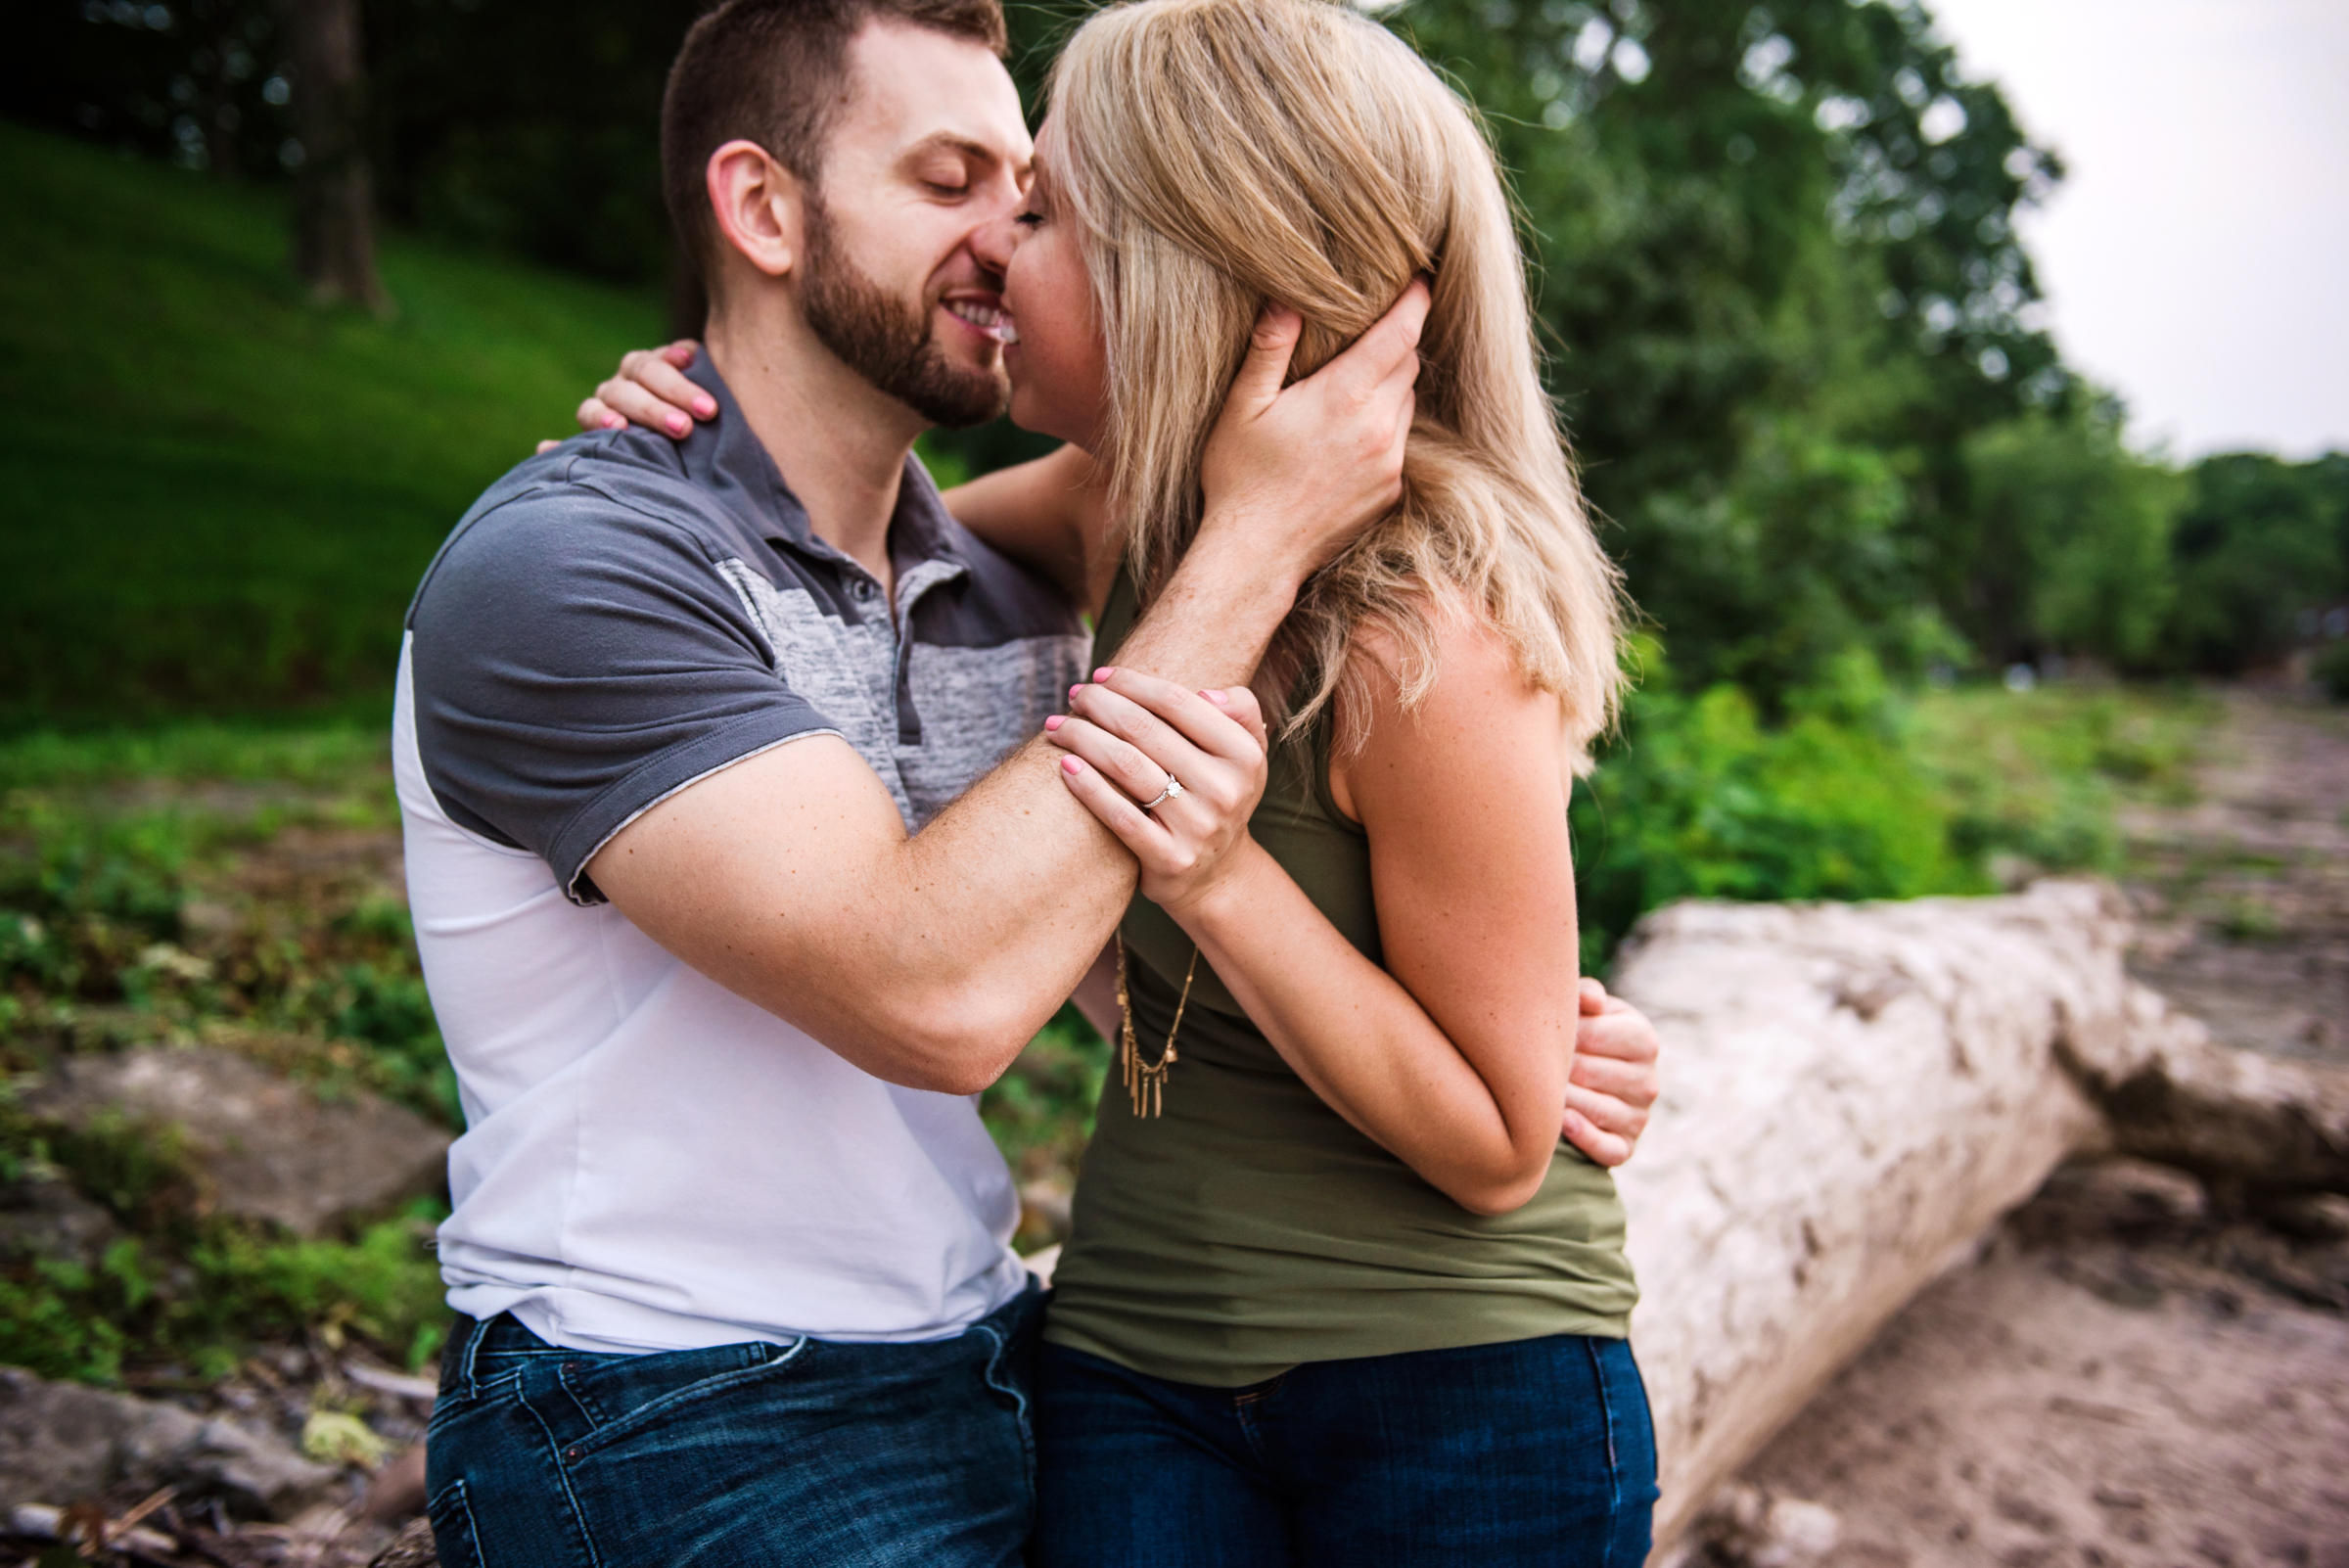 Webster_Park_Rochester_Engagement_Session_JILL_STUDIO_Rochester_NY_Photographer_DSC_9482.jpg